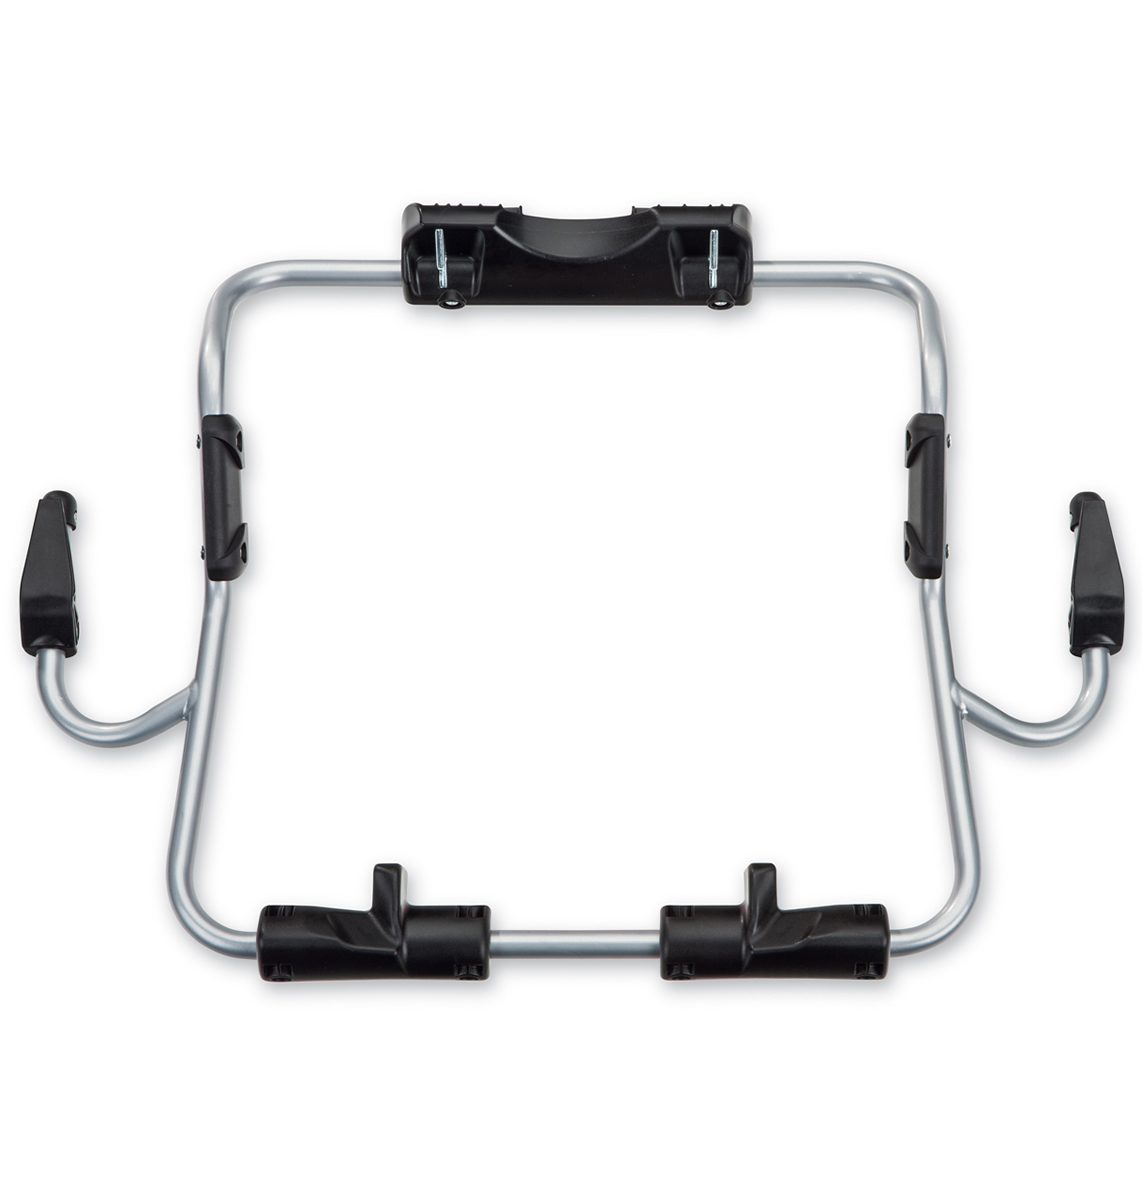 BOB Single Stroller Graco Car Seat Adapter